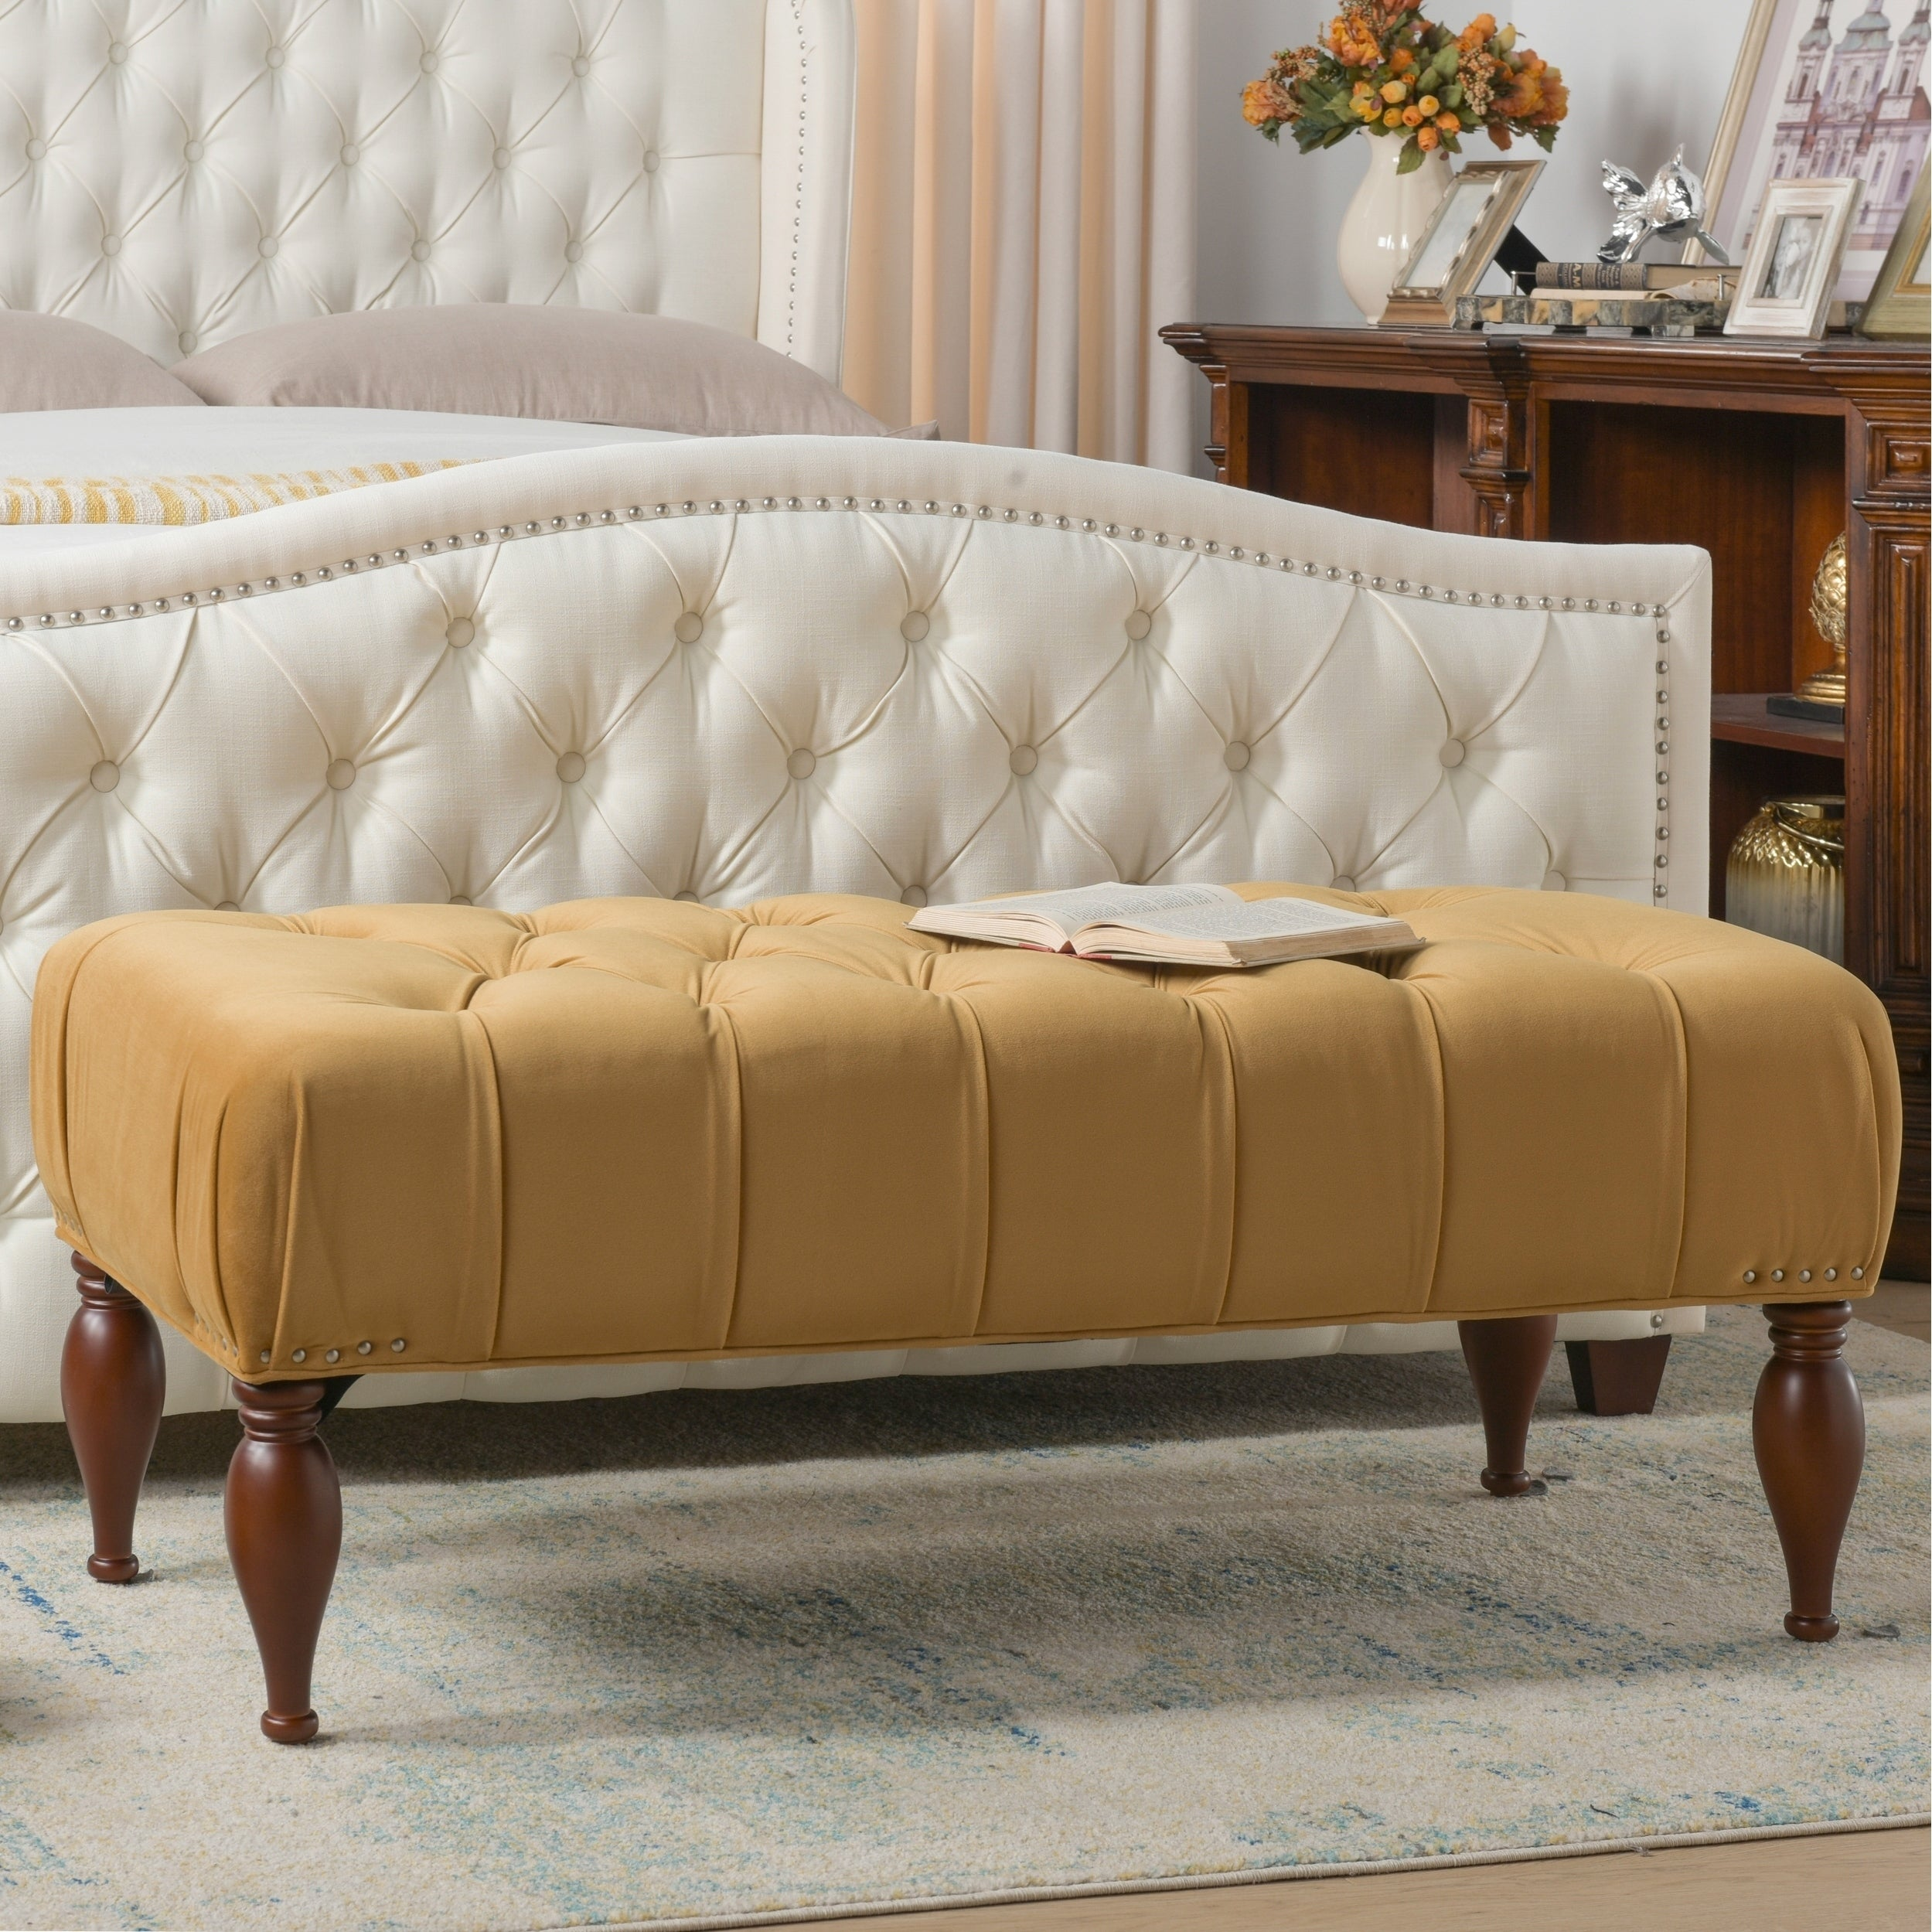 Shop Lyon Tufted Entryway Accent Bench By Jennifer Taylor Home Overstock 9056985